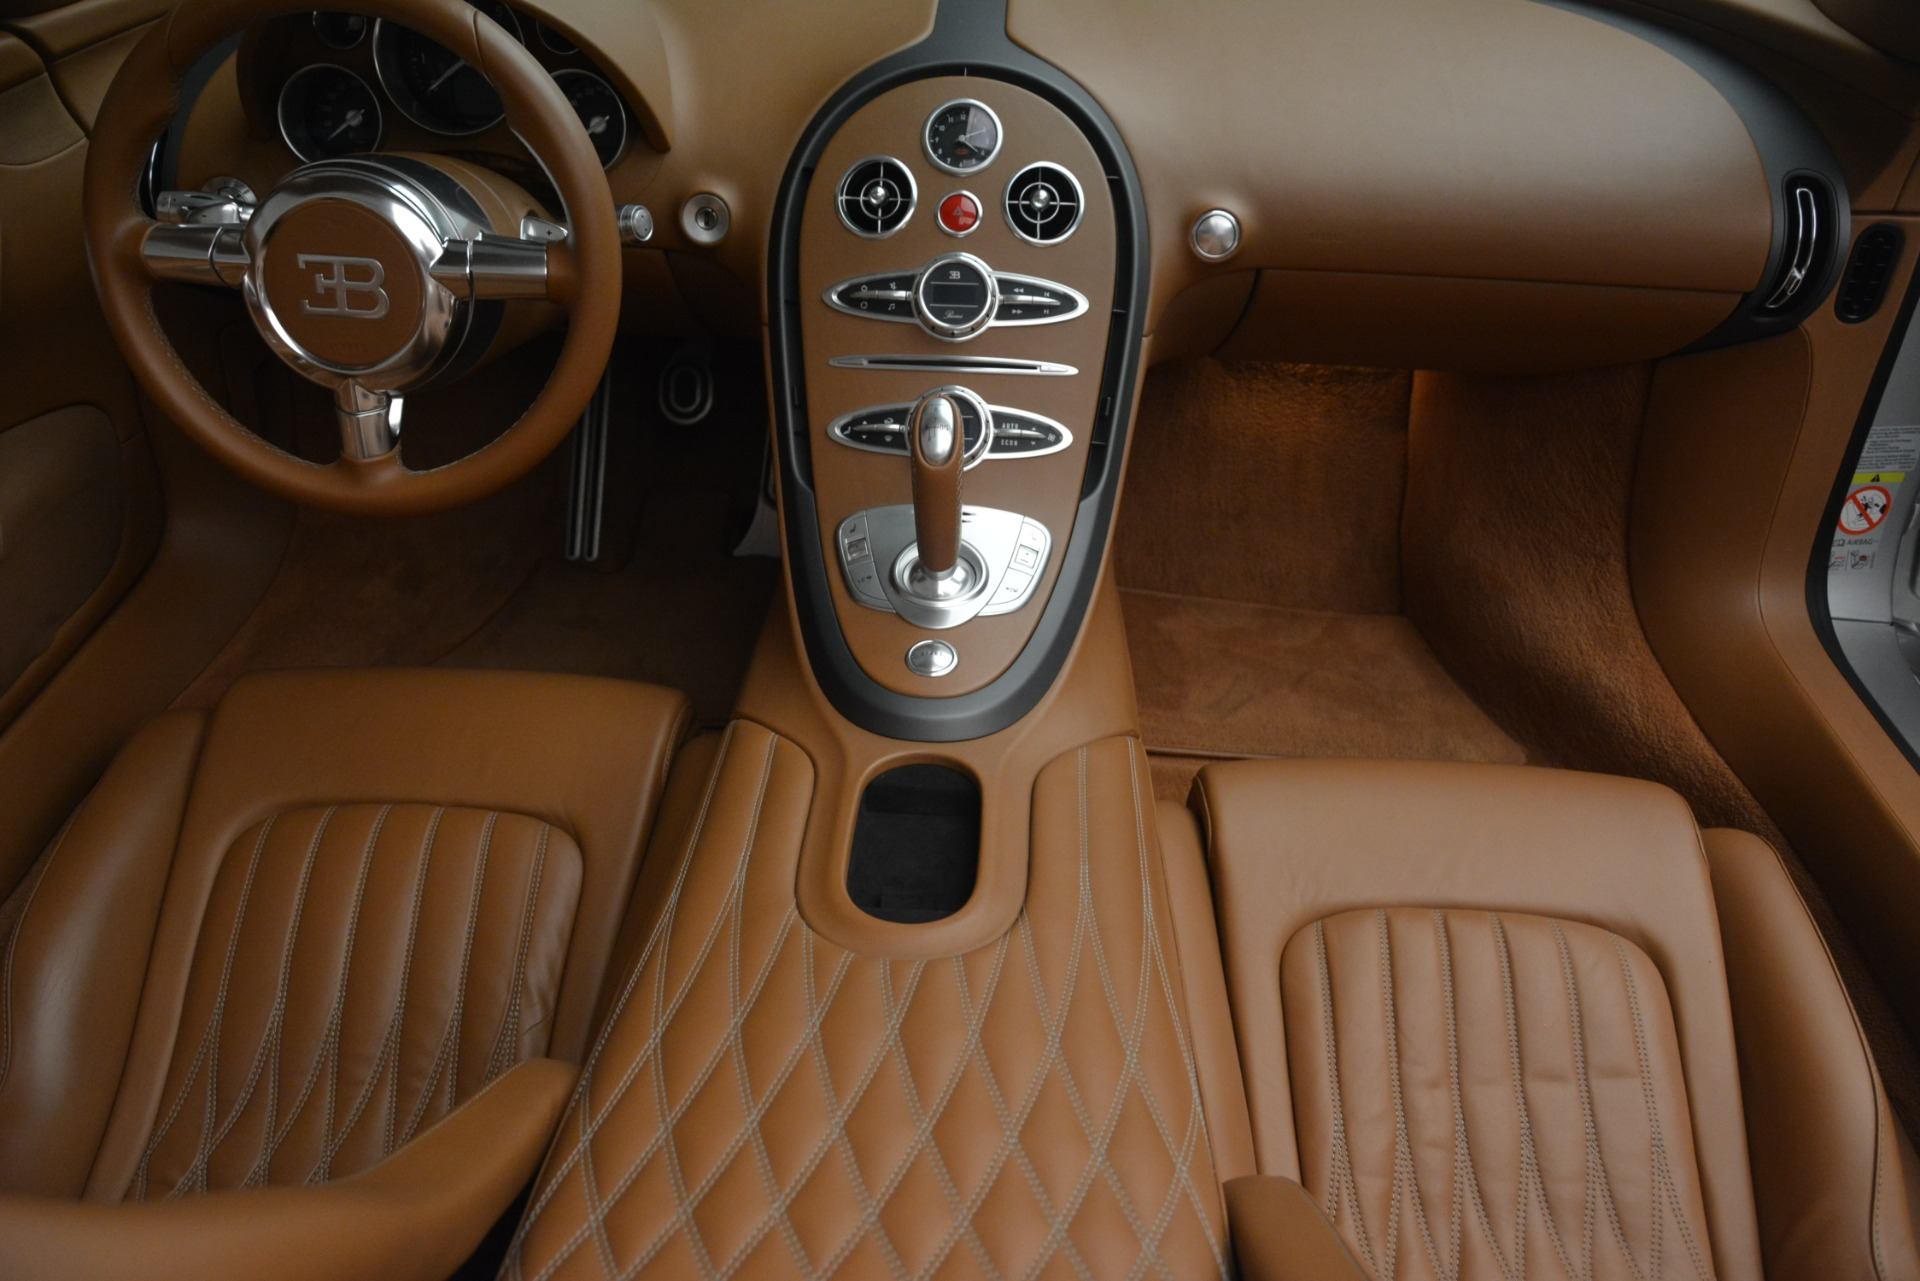 Used 2010 Bugatti Veyron 16.4 Grand Sport For Sale In Westport, CT 3159_p38